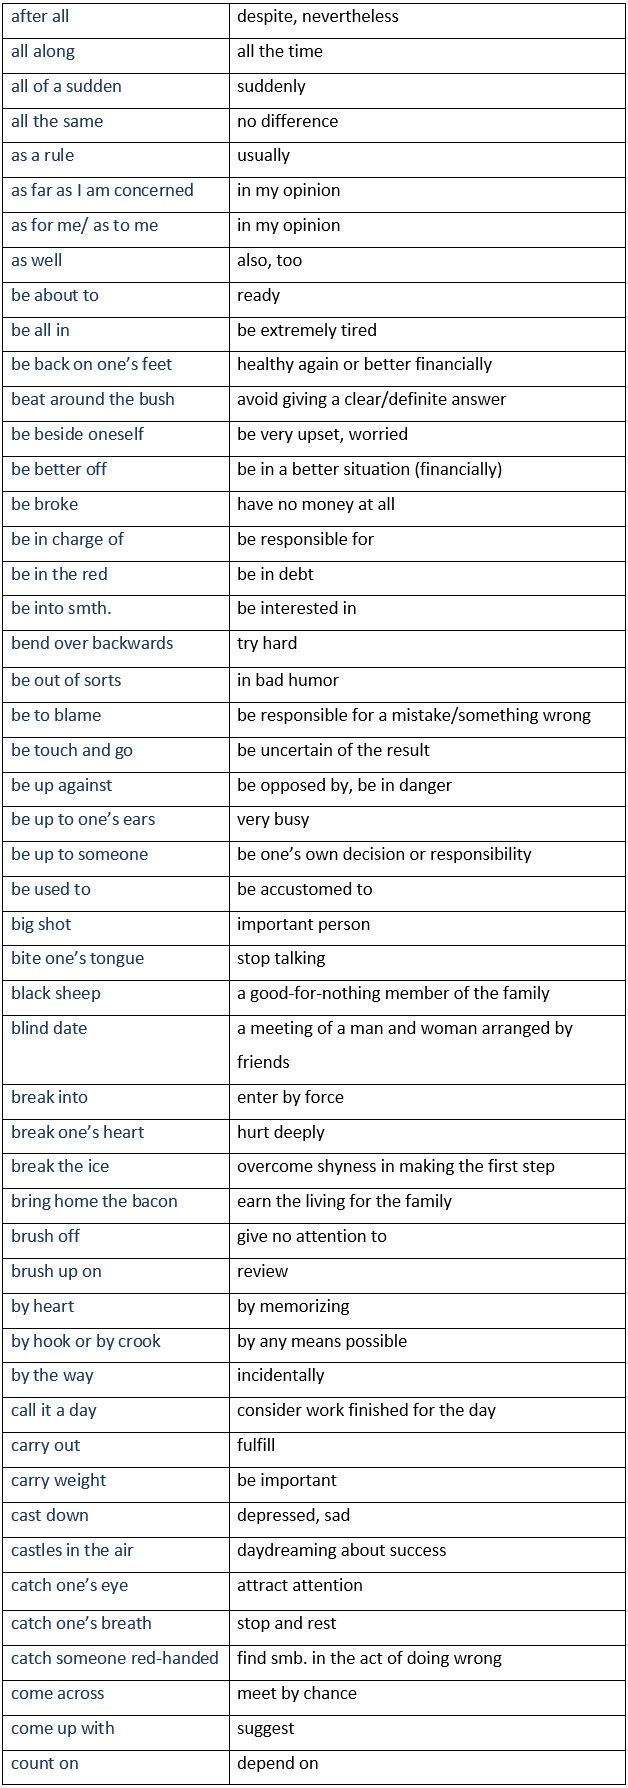 Very Useful Expressions in English - learn English,vocabulary,english